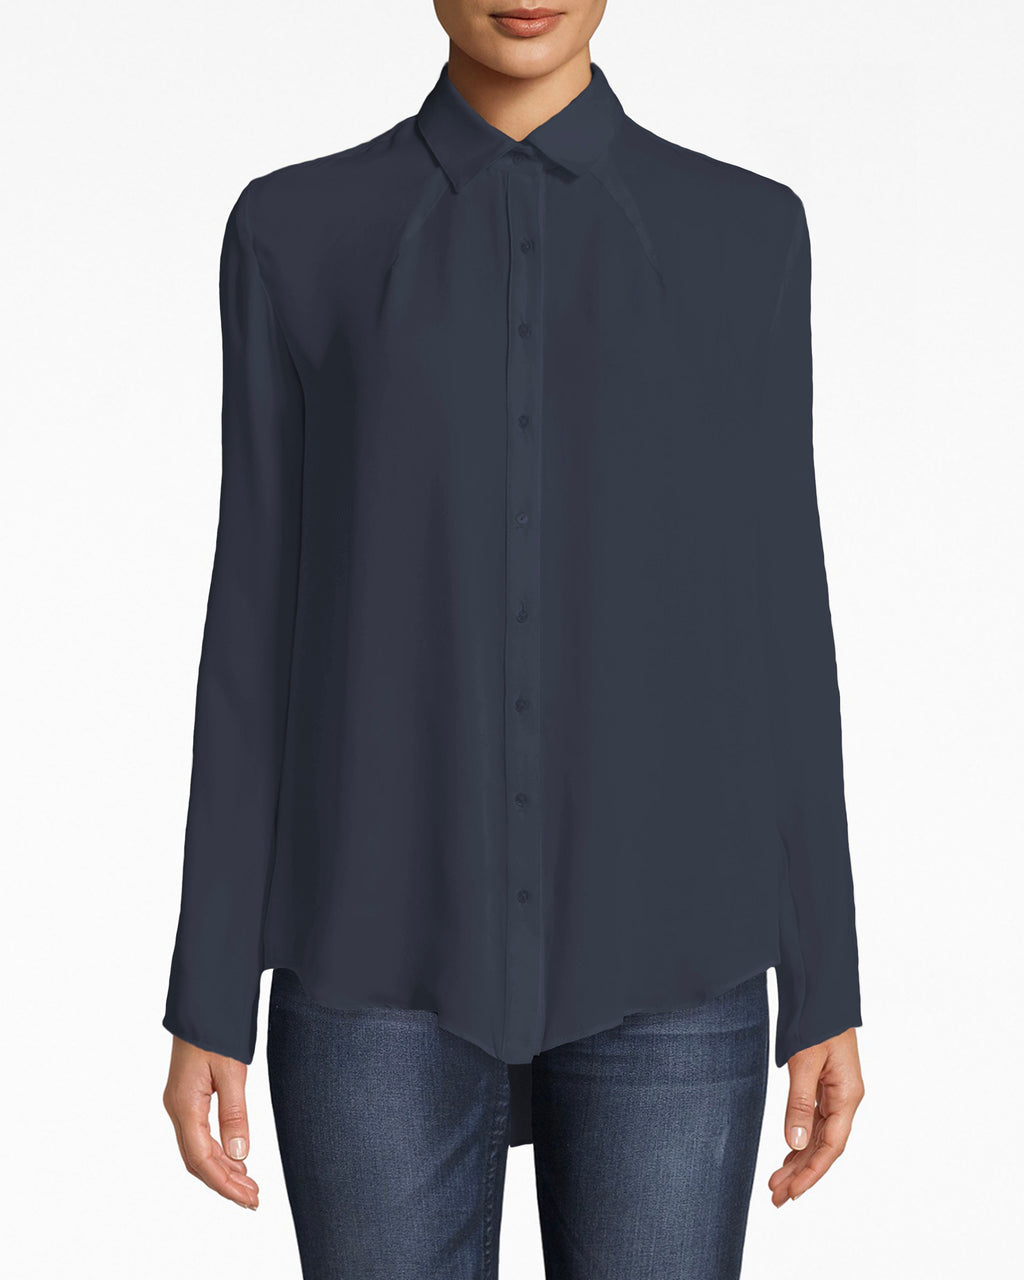 BC10300 - SILK BOYFRIEND BLOUSE With jersey back - tops - blouses - Boyfriend blouses work with just about anything. This one features a high collared neckline and a jersey back. The hem flows out naturally.